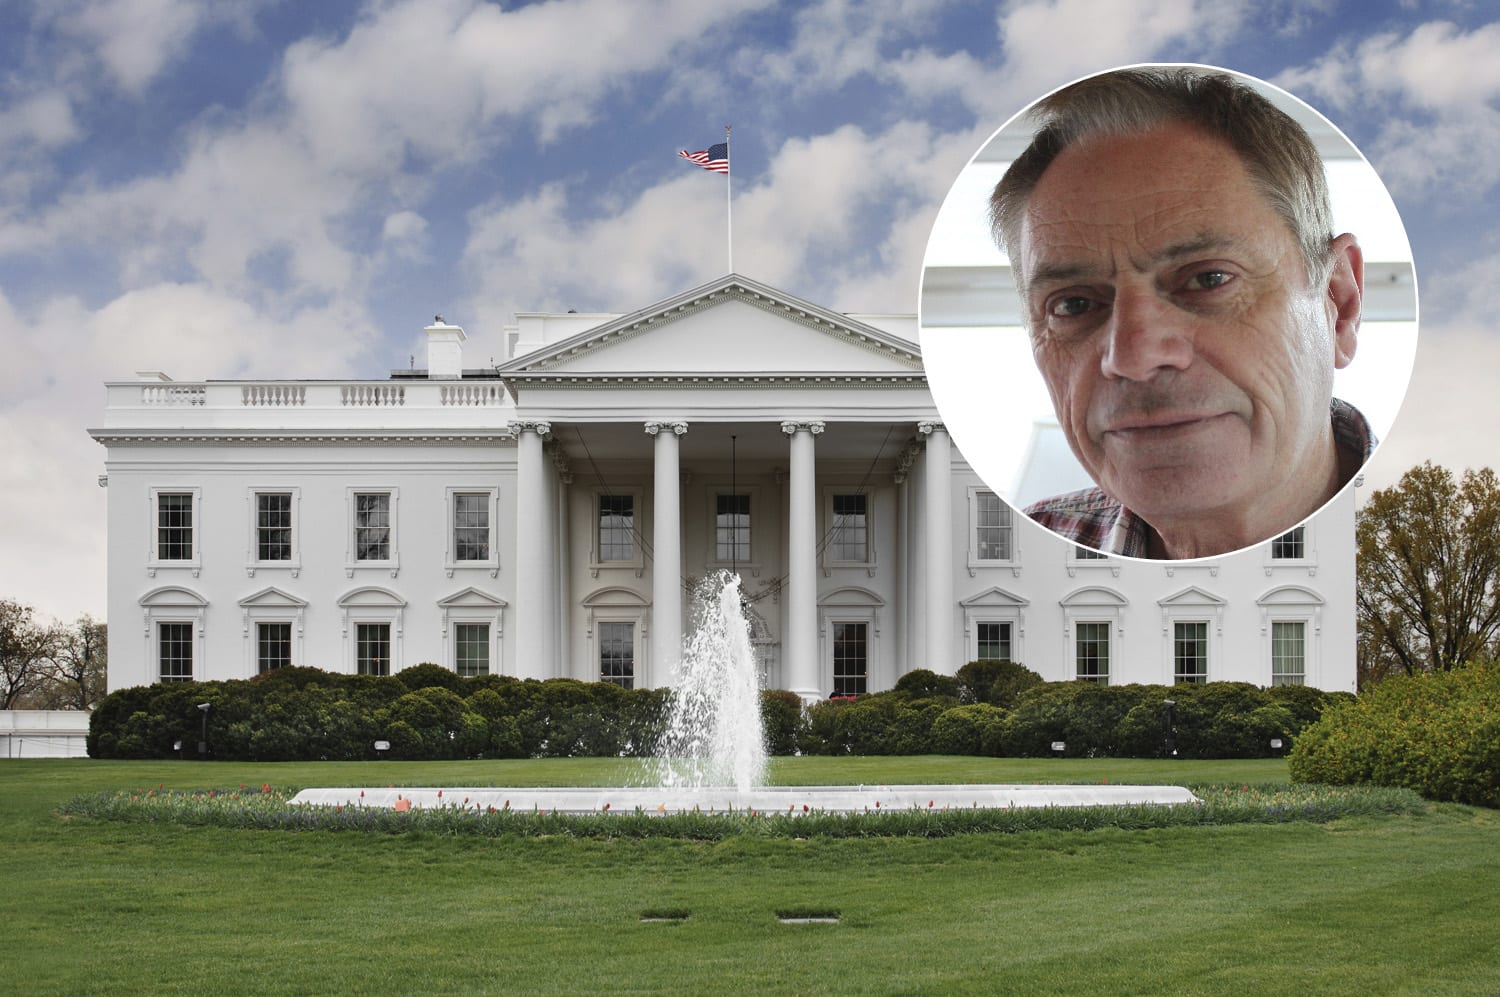 Paul Moorhead will be at the White House this week